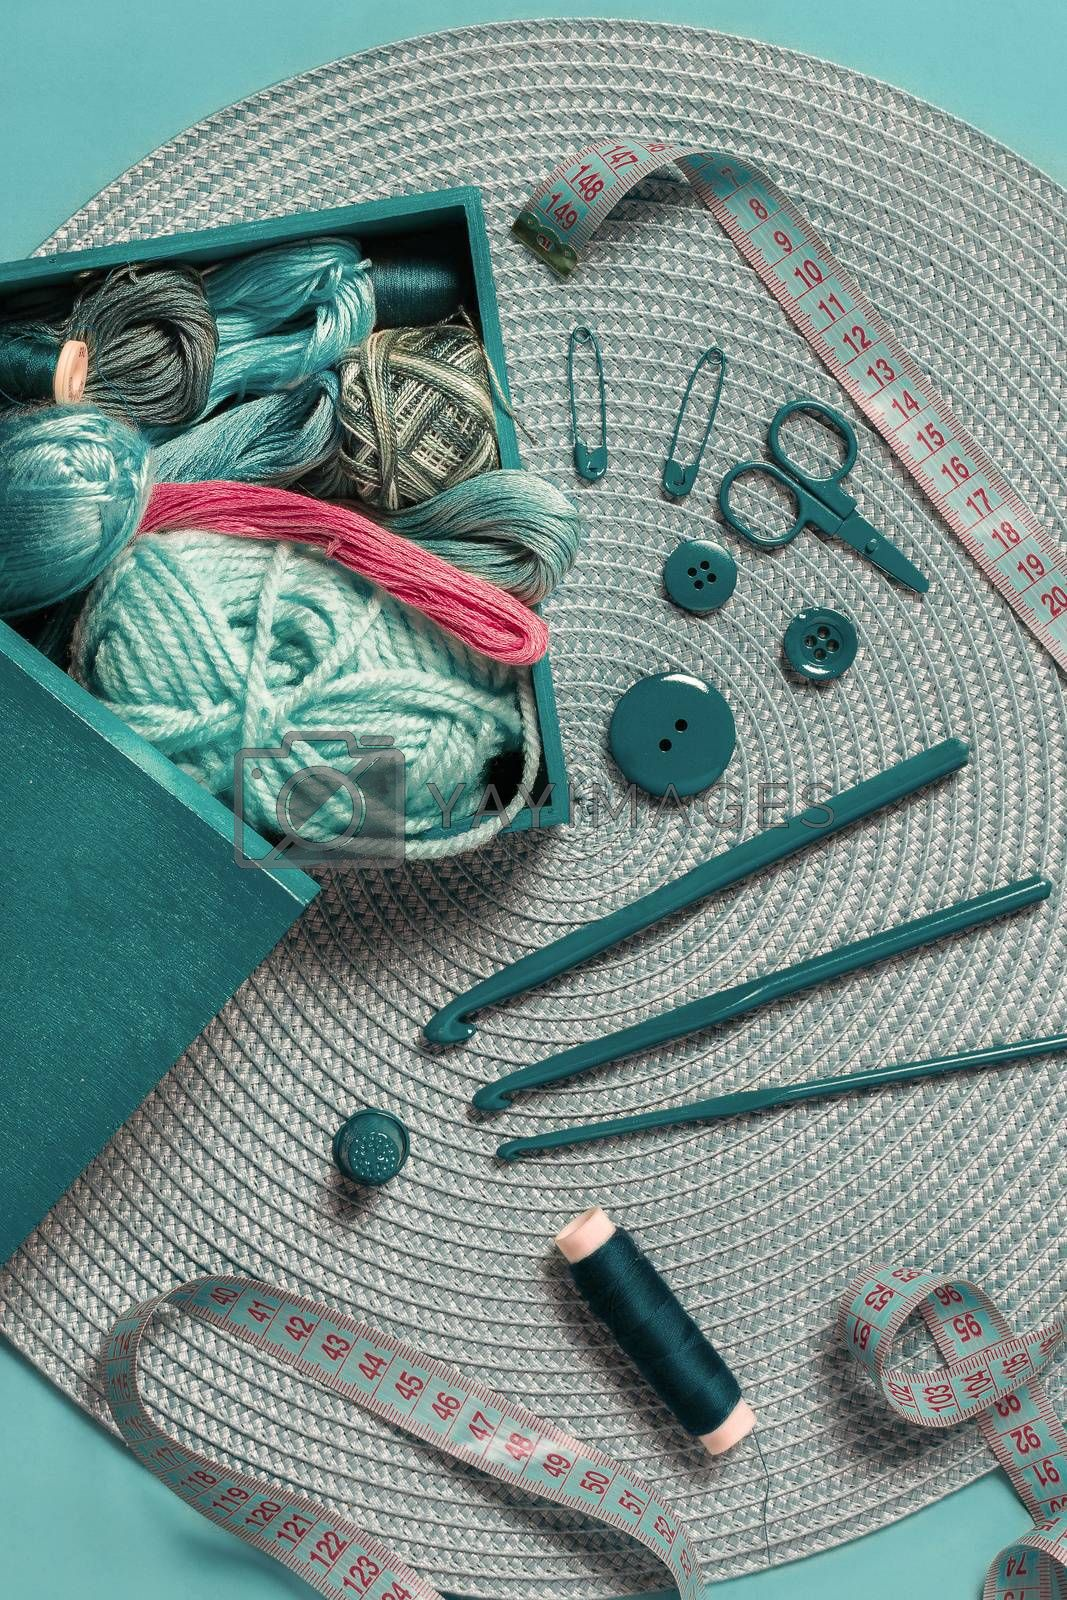 crochet needles for knitting balls of wool threads and tape measure on a green textured table in overhead view